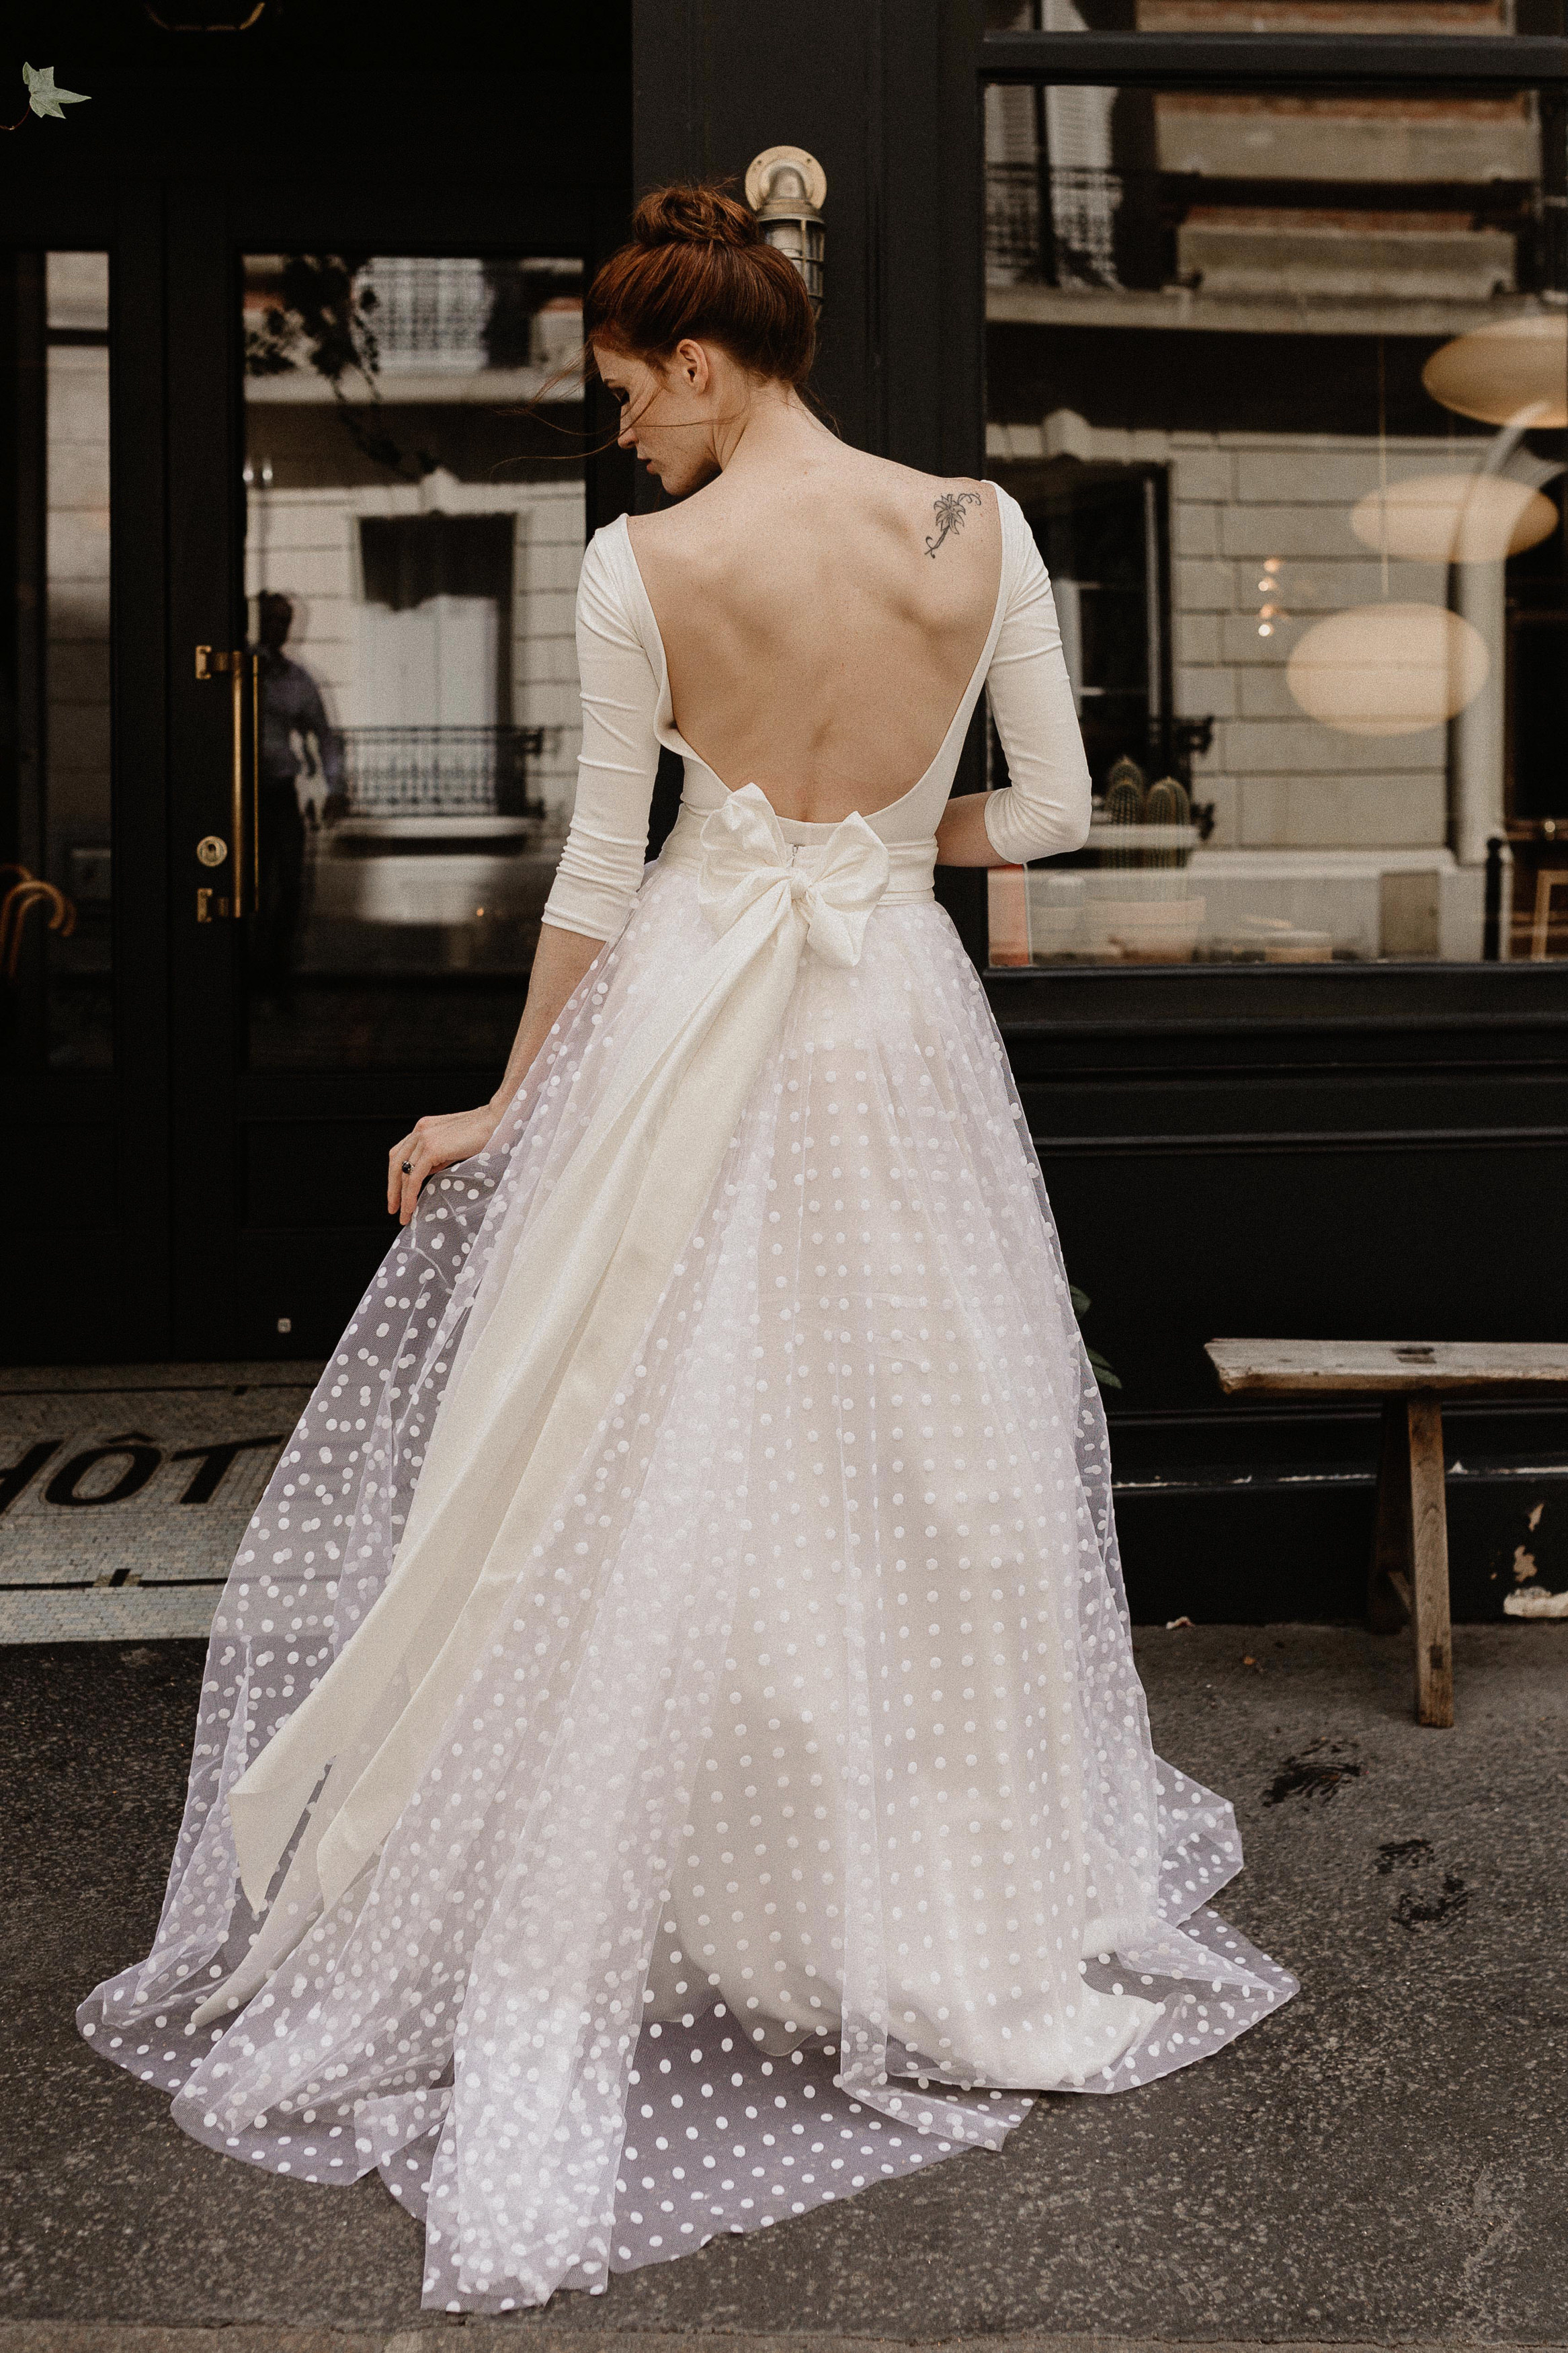 Wedding dresses from Paris by Bohème Rock